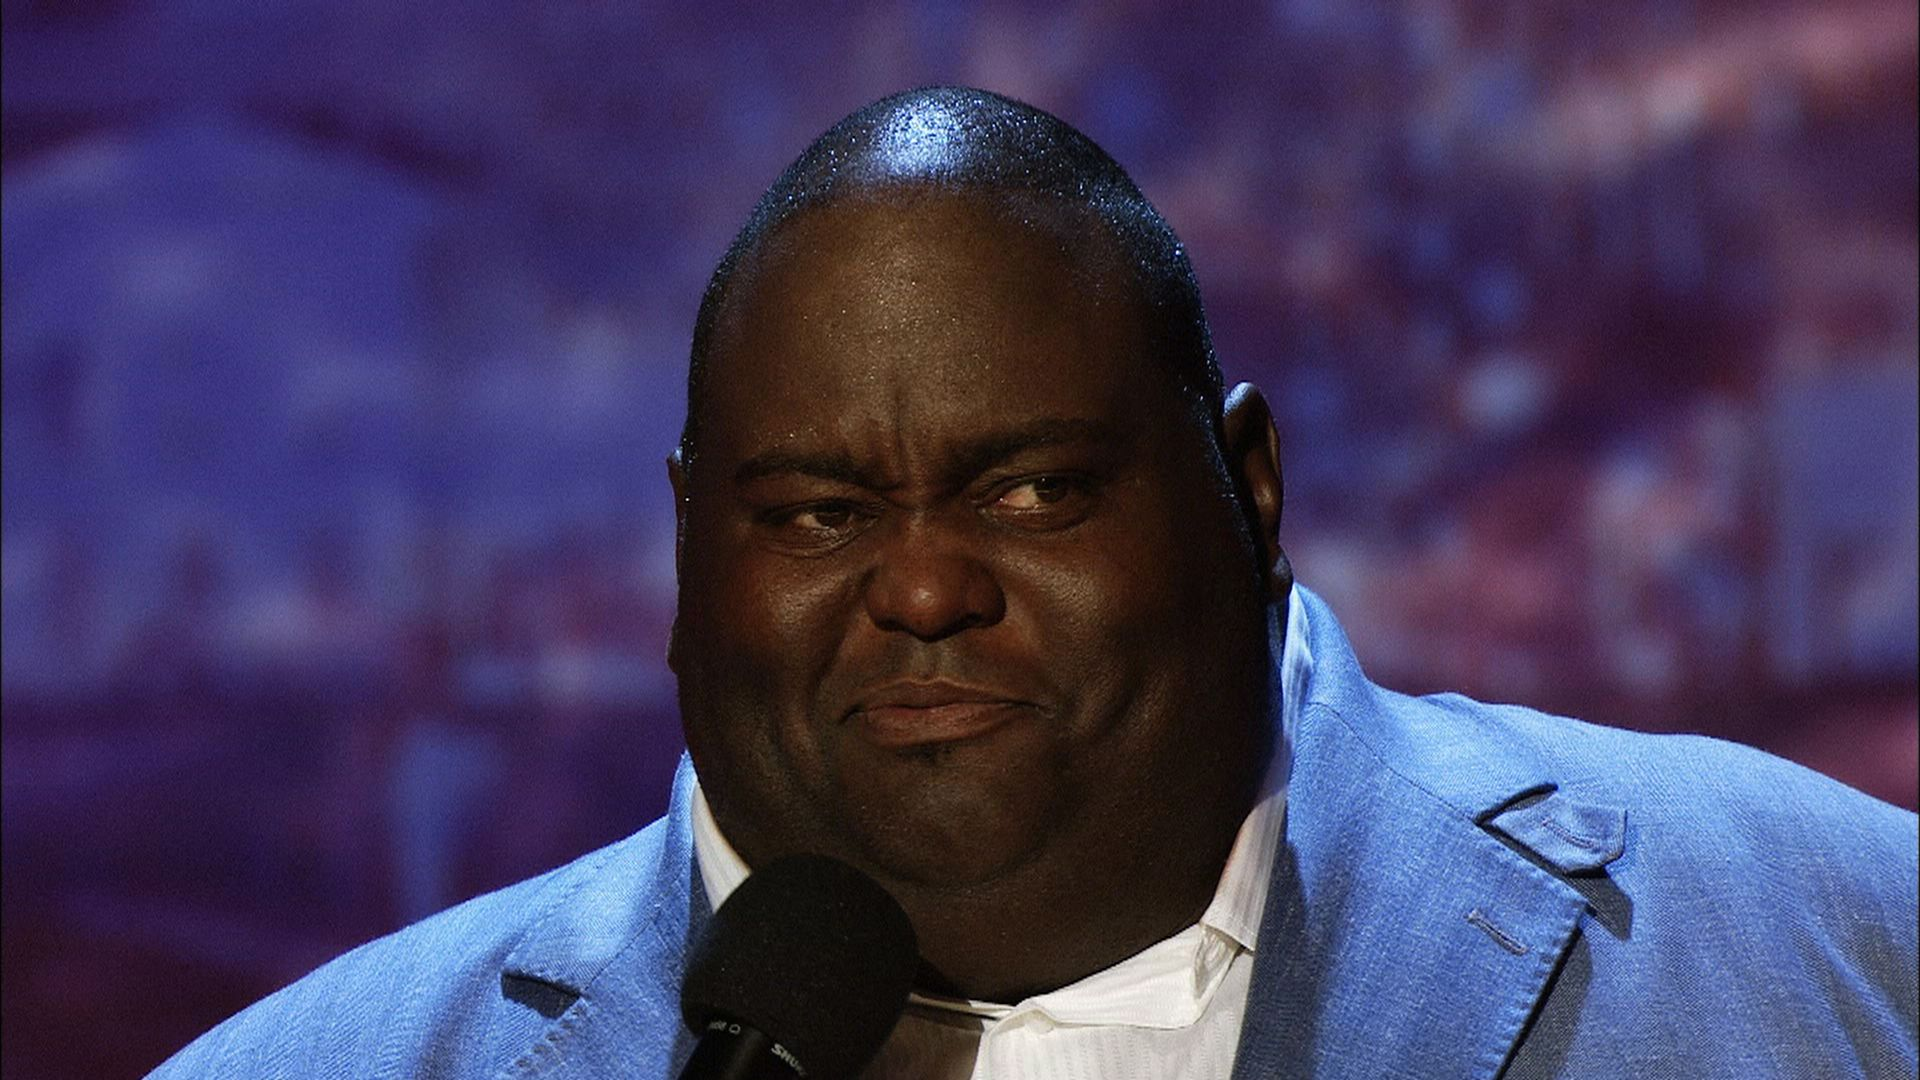 lavell crawford net worth 2014lavell crawford money, lavell crawford wife, lavell crawford, lavell crawford yo mama, lavell crawford stand up, lavell crawford breaking bad, lavell crawford yo momma, lavell crawford momma joke, lavell crawford your mama, lavell crawford mama joke, lavell crawford height weight, lavell crawford imdb, lavell crawford net worth 2014, lavell crawford dad, lavell crawford net worth, lavell crawford grocery store, lavell crawford tour, lavell crawford youtube, lavell crawford weight loss, lavell crawford mom